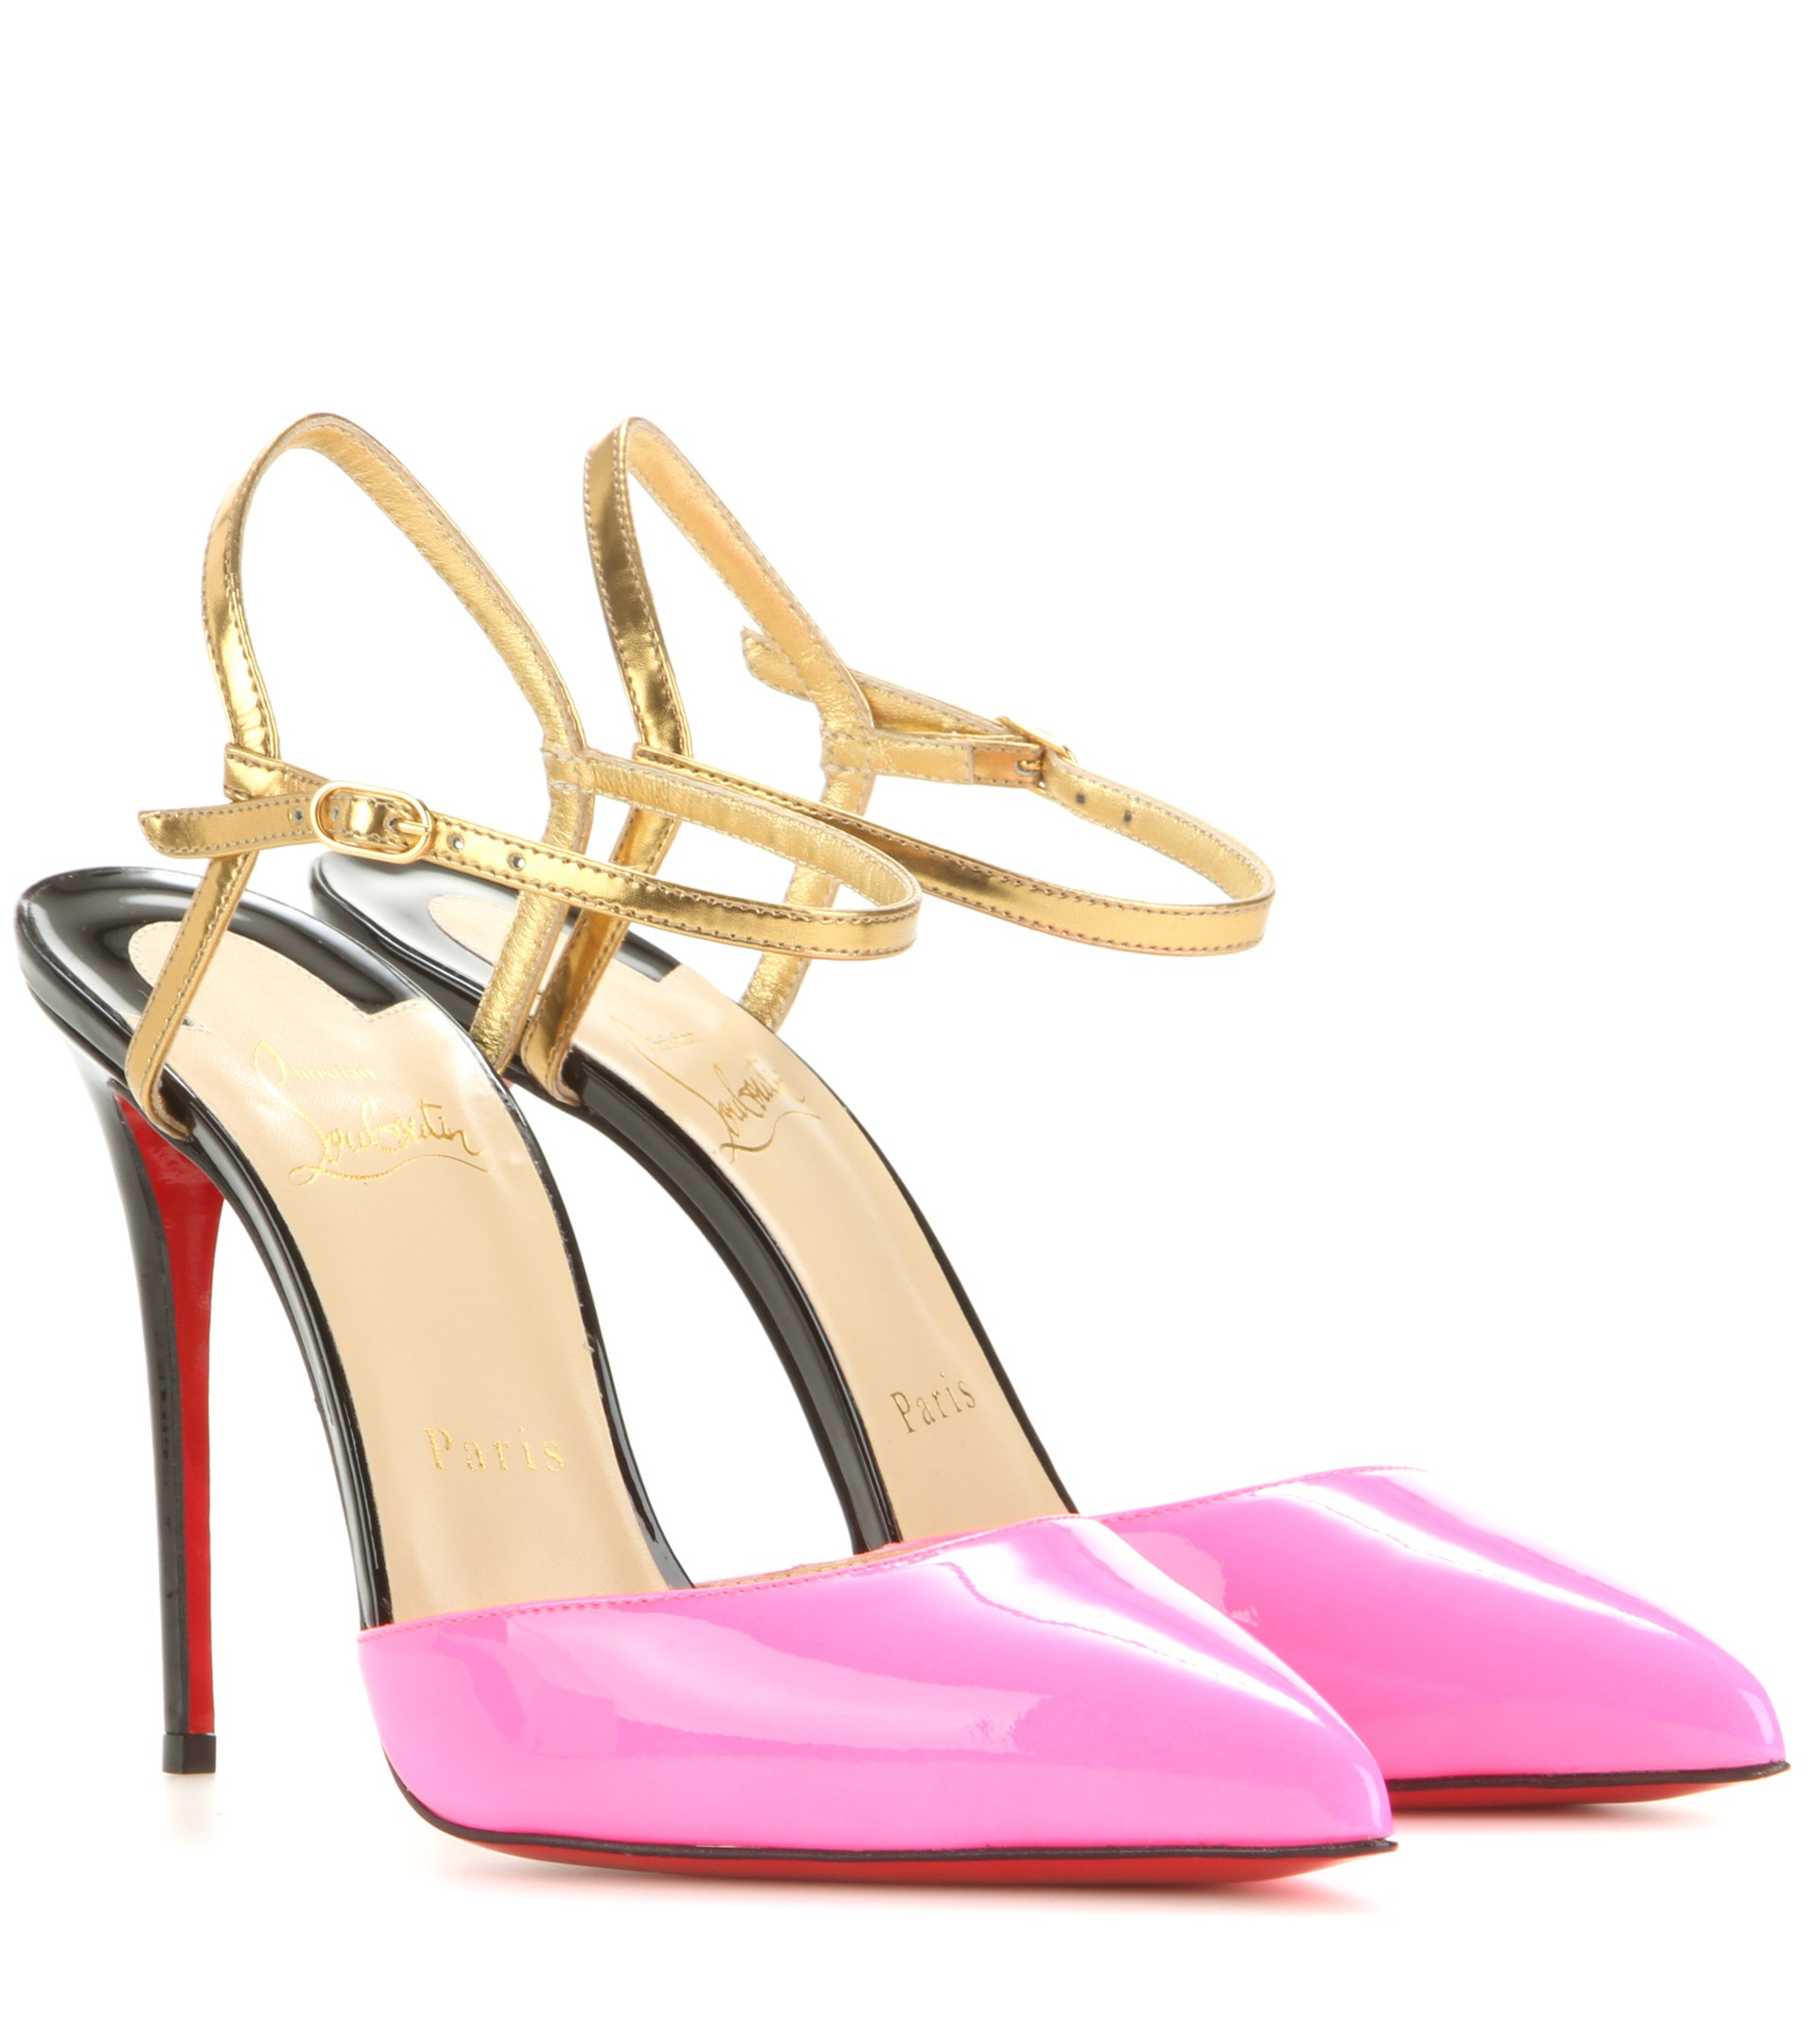 louboutin knockoffs - christian louboutin sandals Gold-tone patent leather covered heels ...